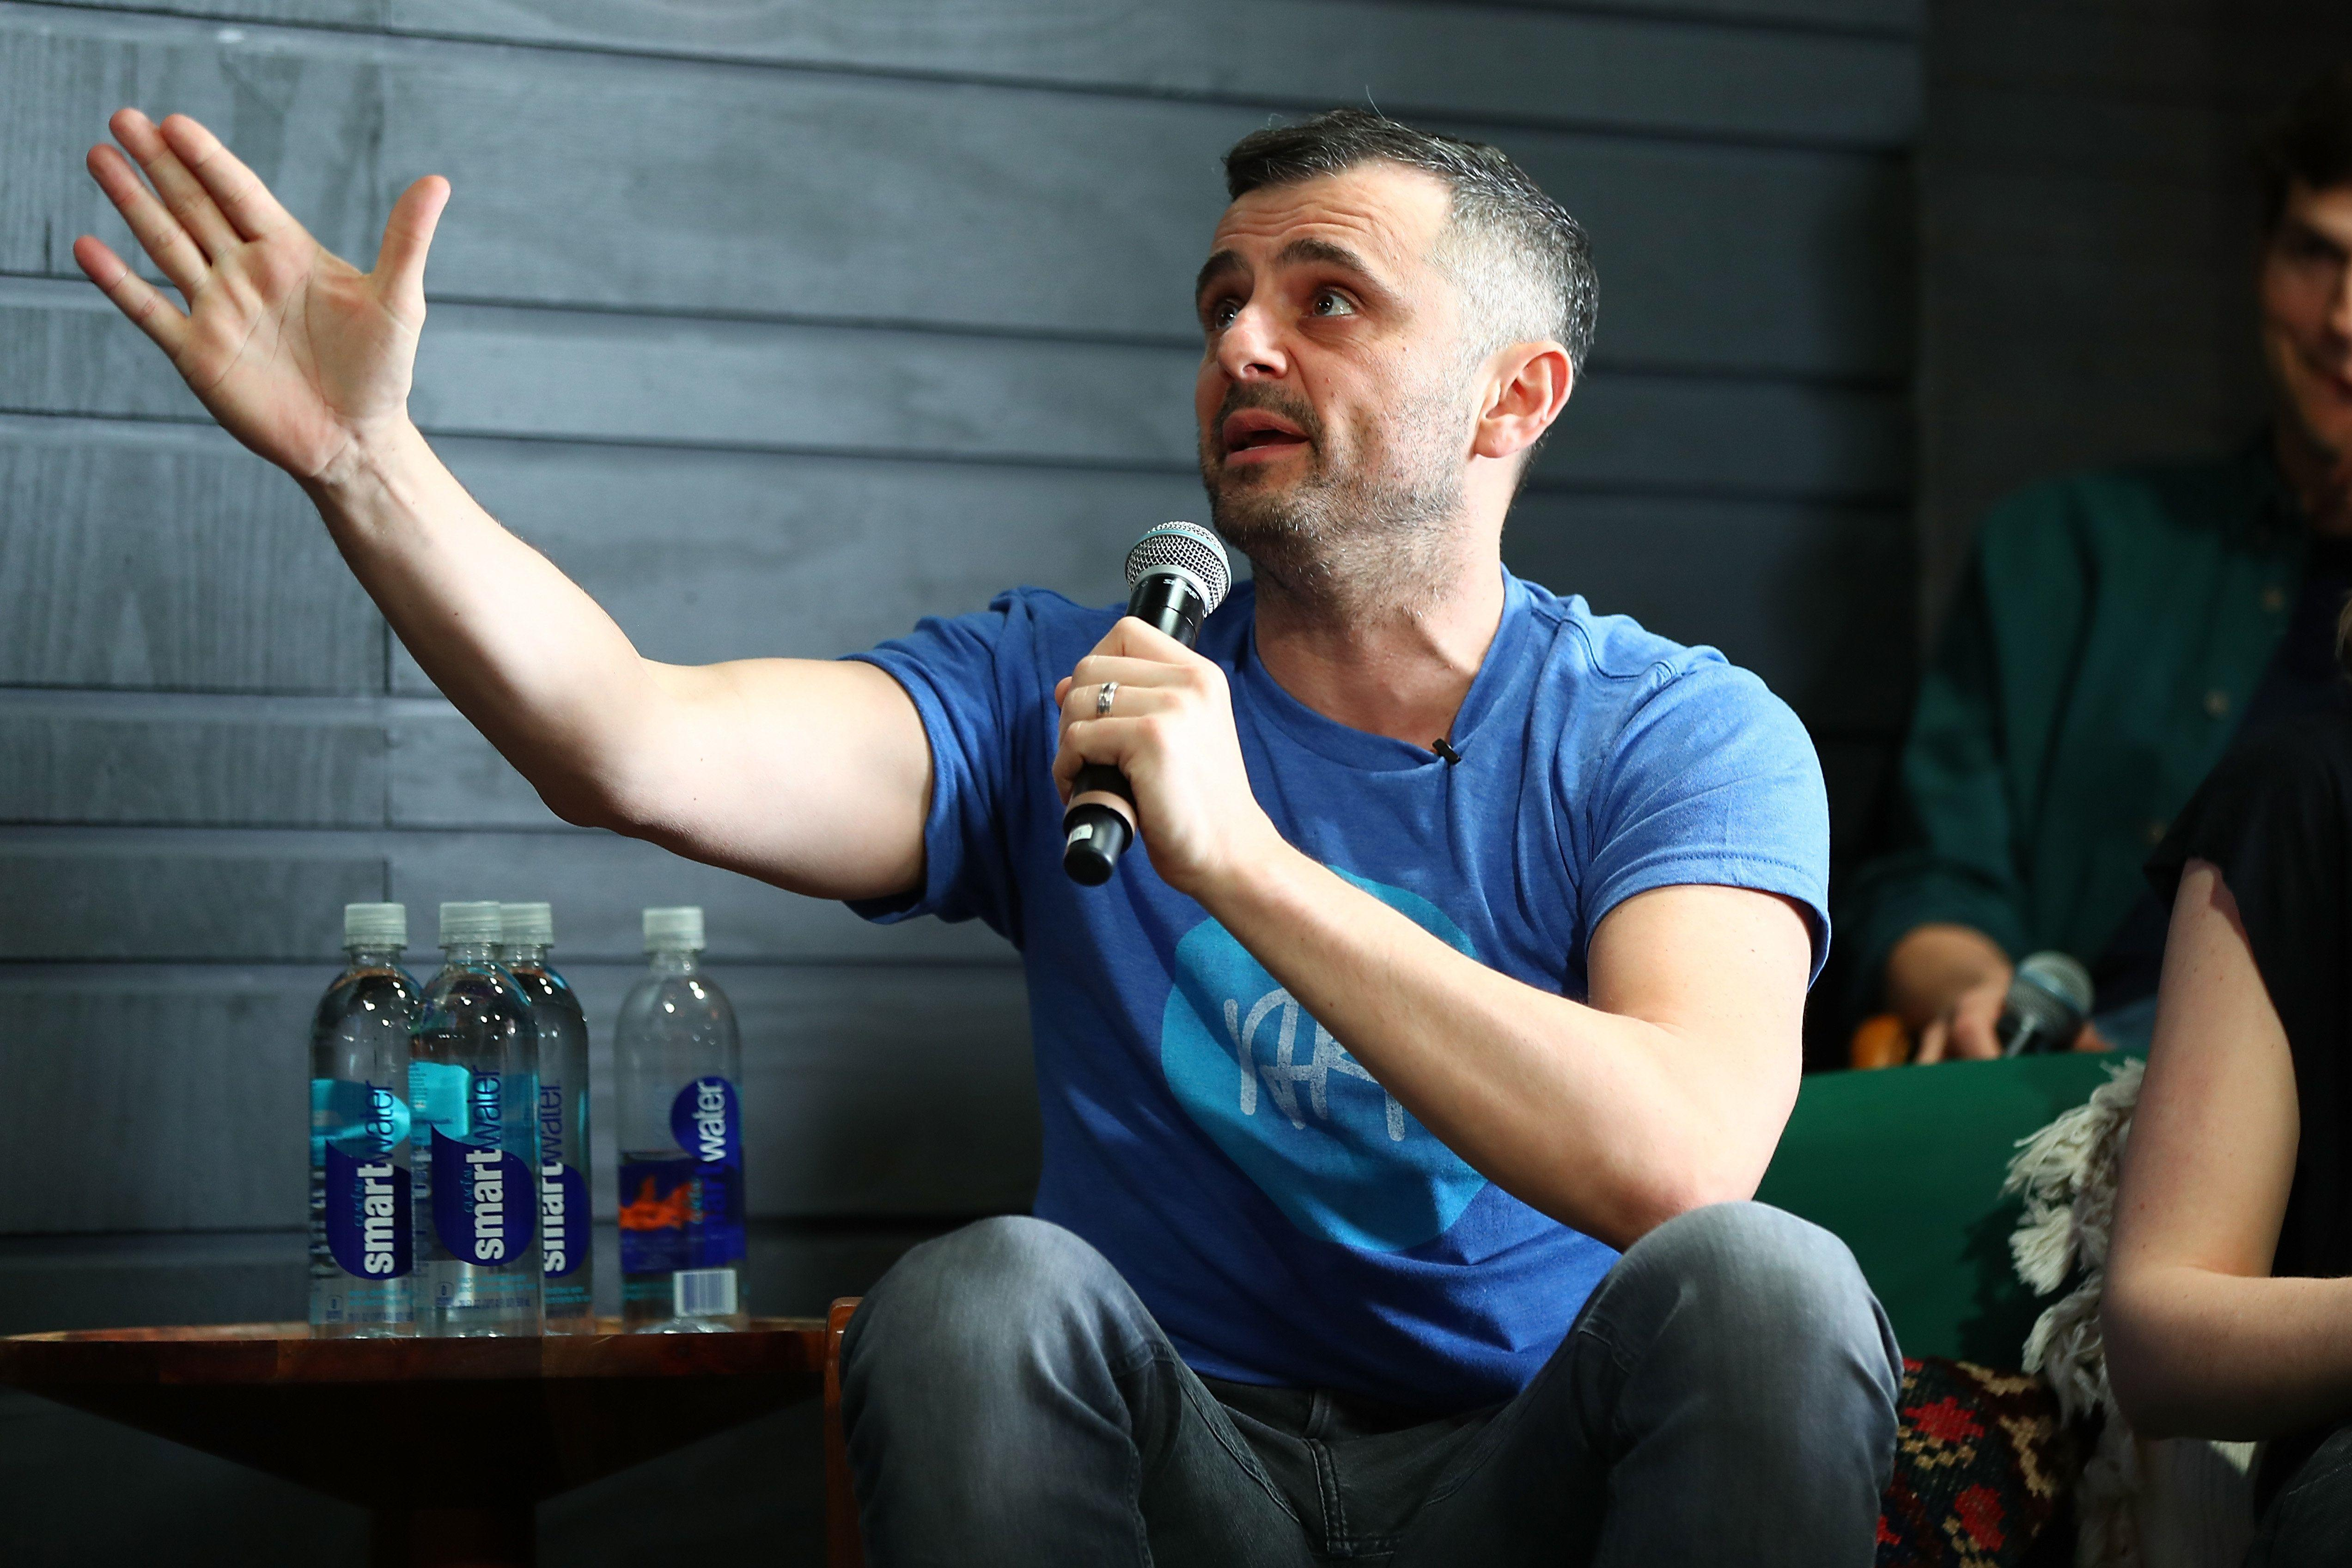 Amazon Echo and Google Home are the next big trend, says entrepreneur and tech investor Gary Vaynerchuk